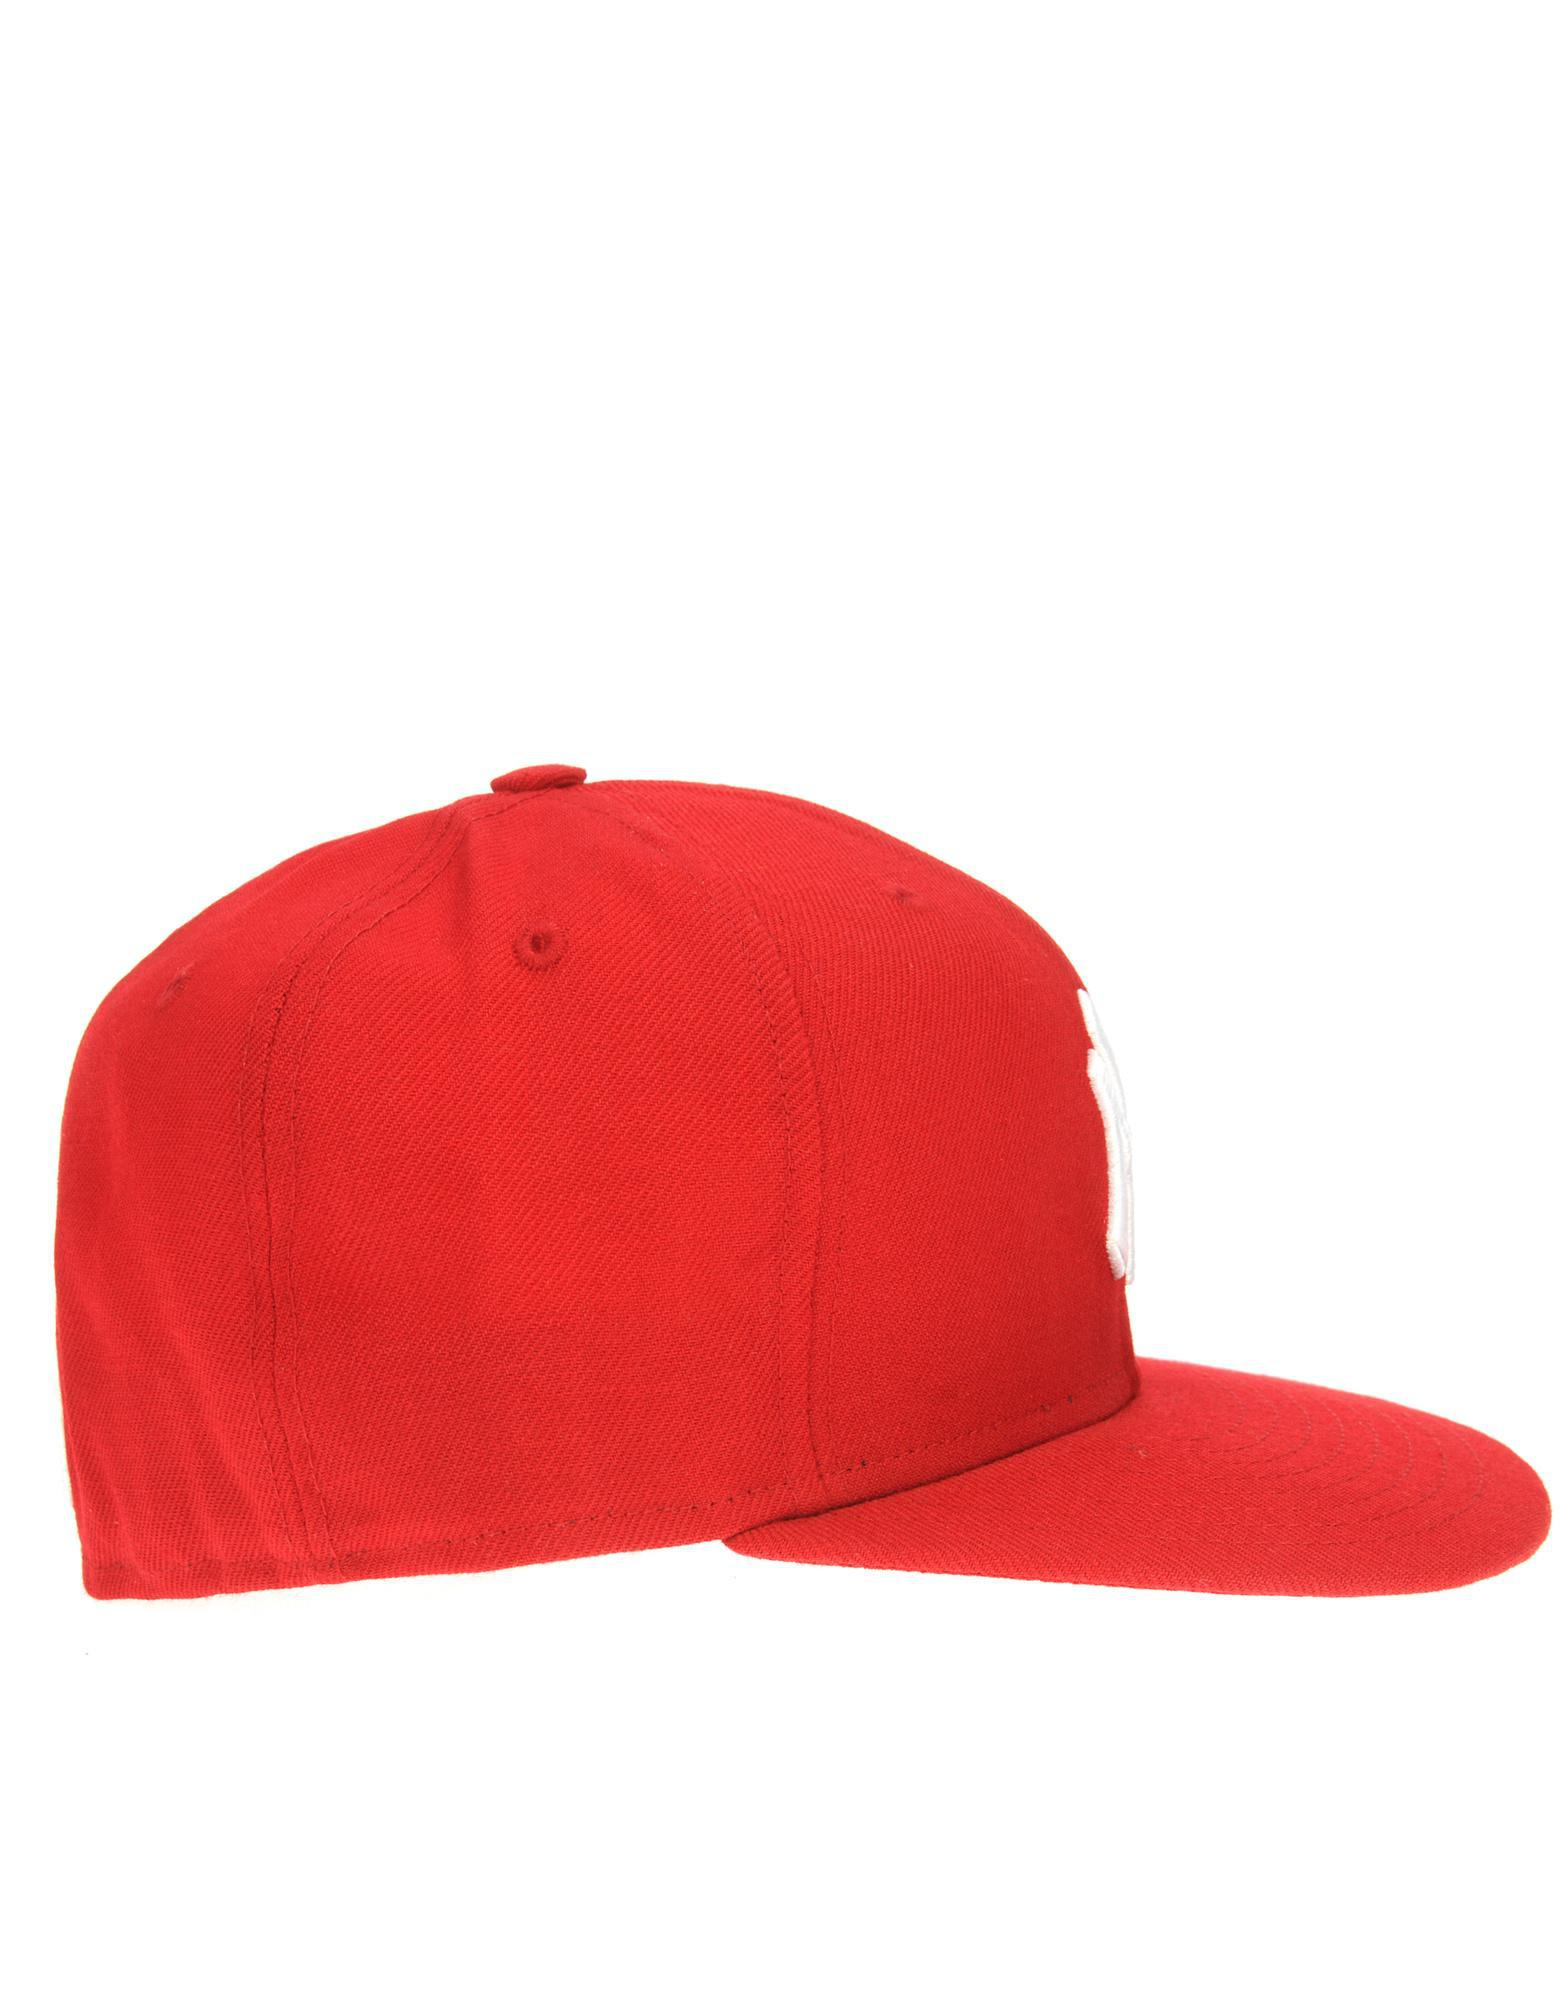 bcefae6b KTZ Mlb New York Yankees 59fifty Fitted Cap in Red for Men - Lyst